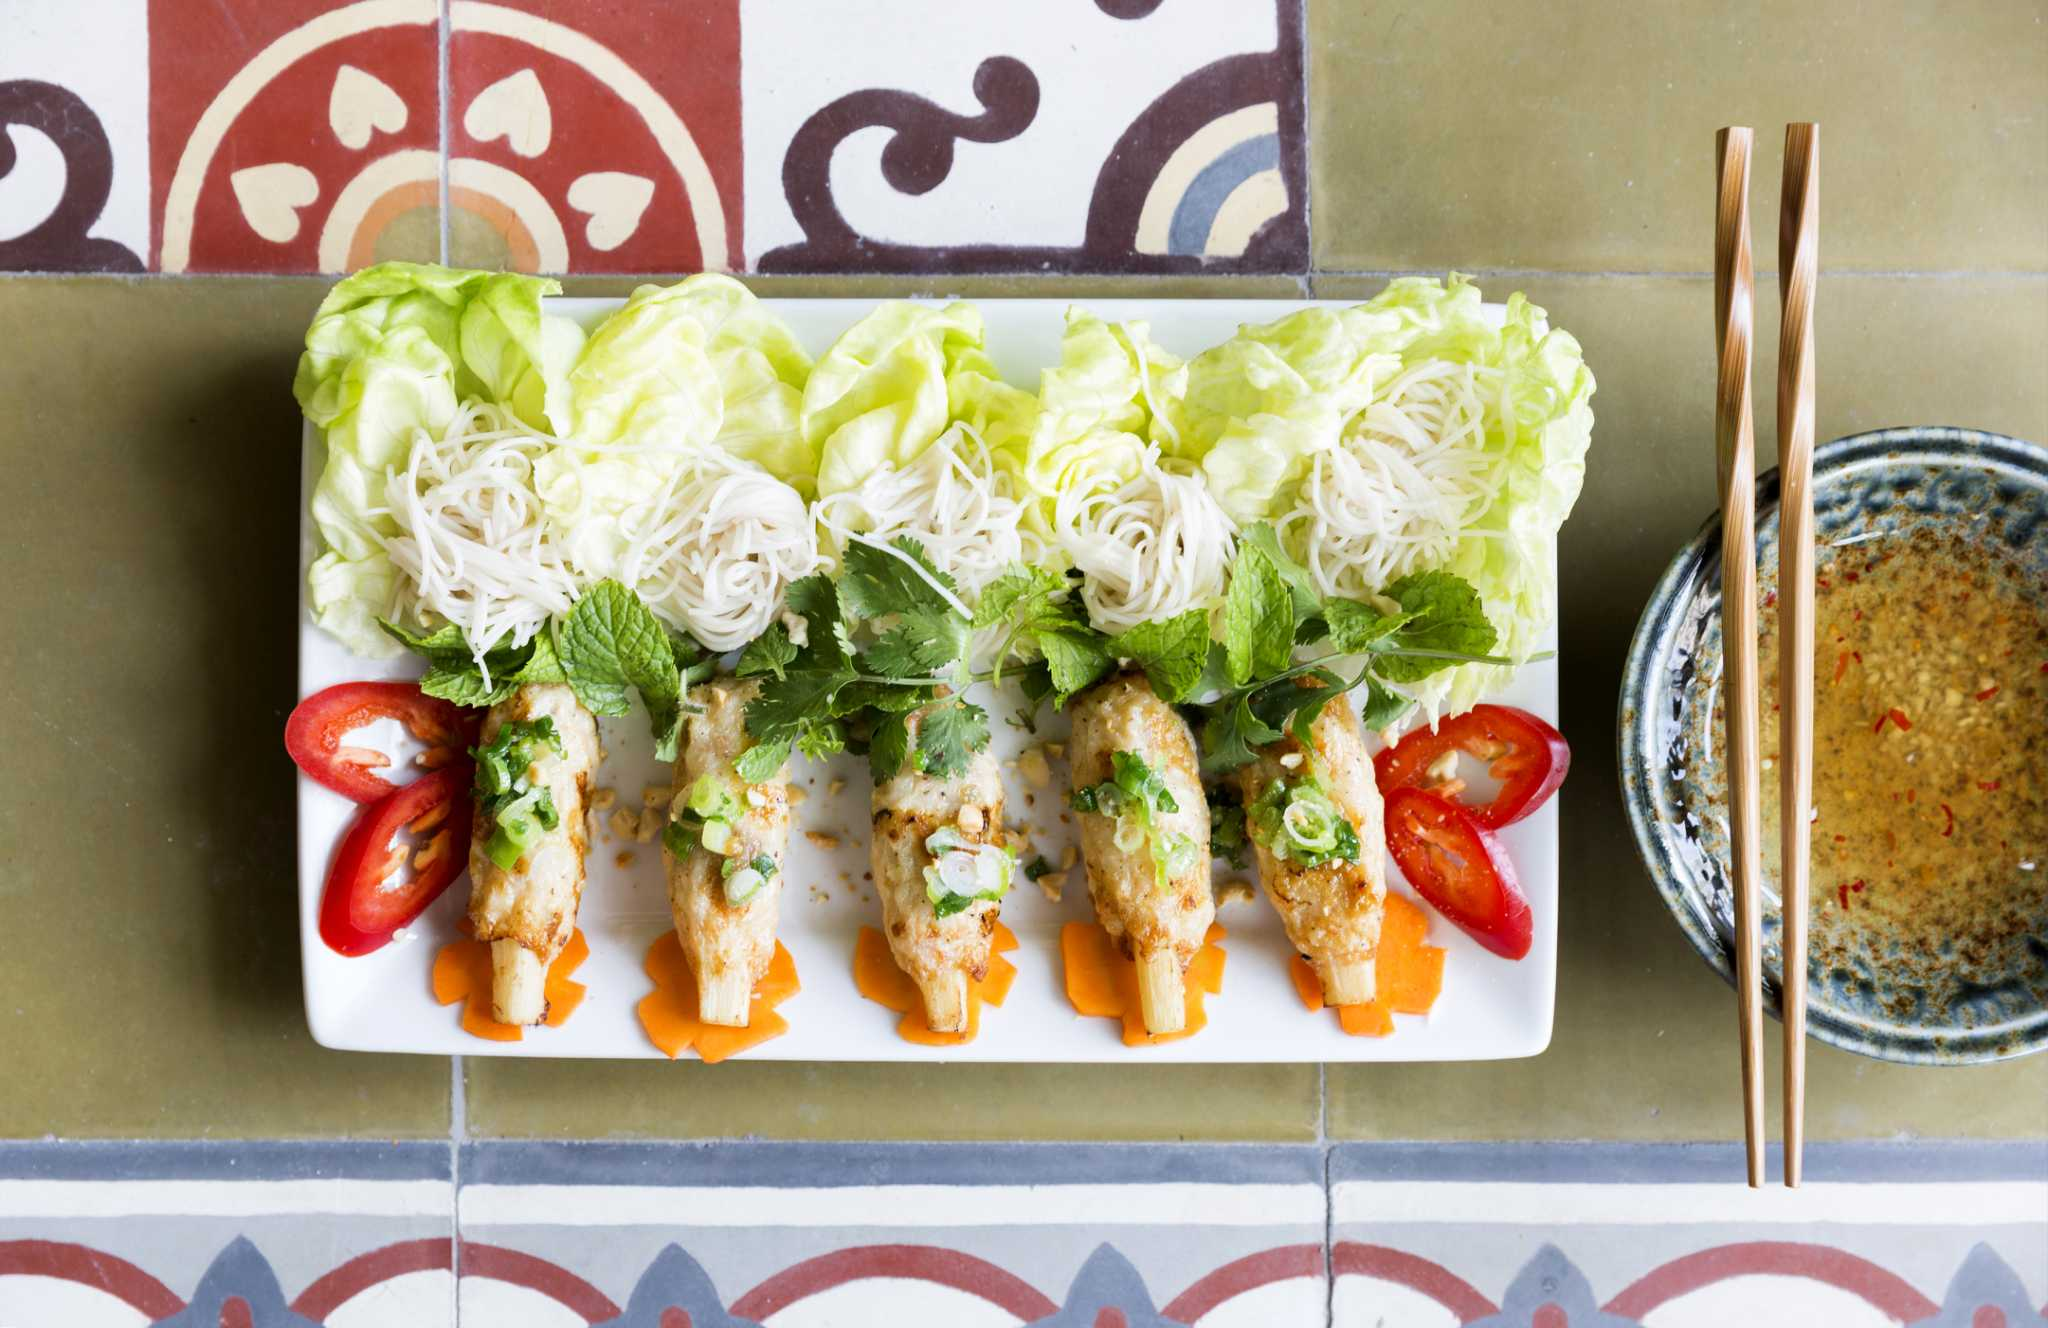 Review: At Le Colonial, inconsistent Vietnamese food meets festive atmosphere